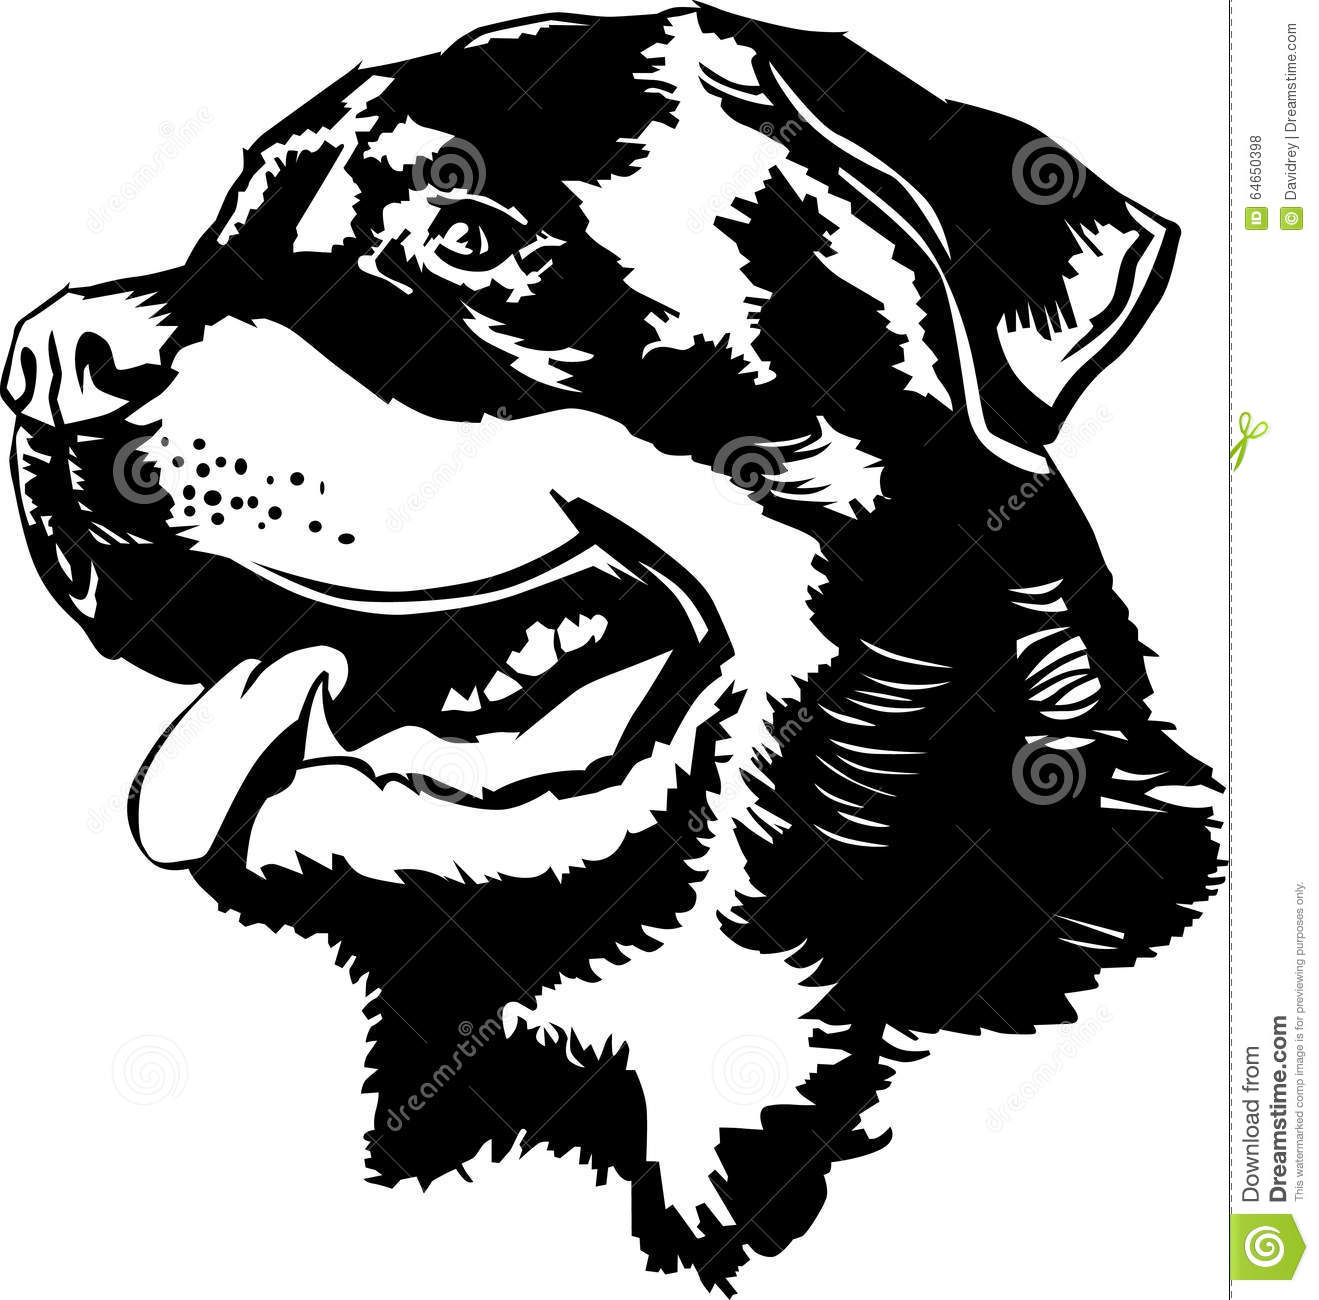 Rottweiler clipart black and white 3 » Clipart Station.